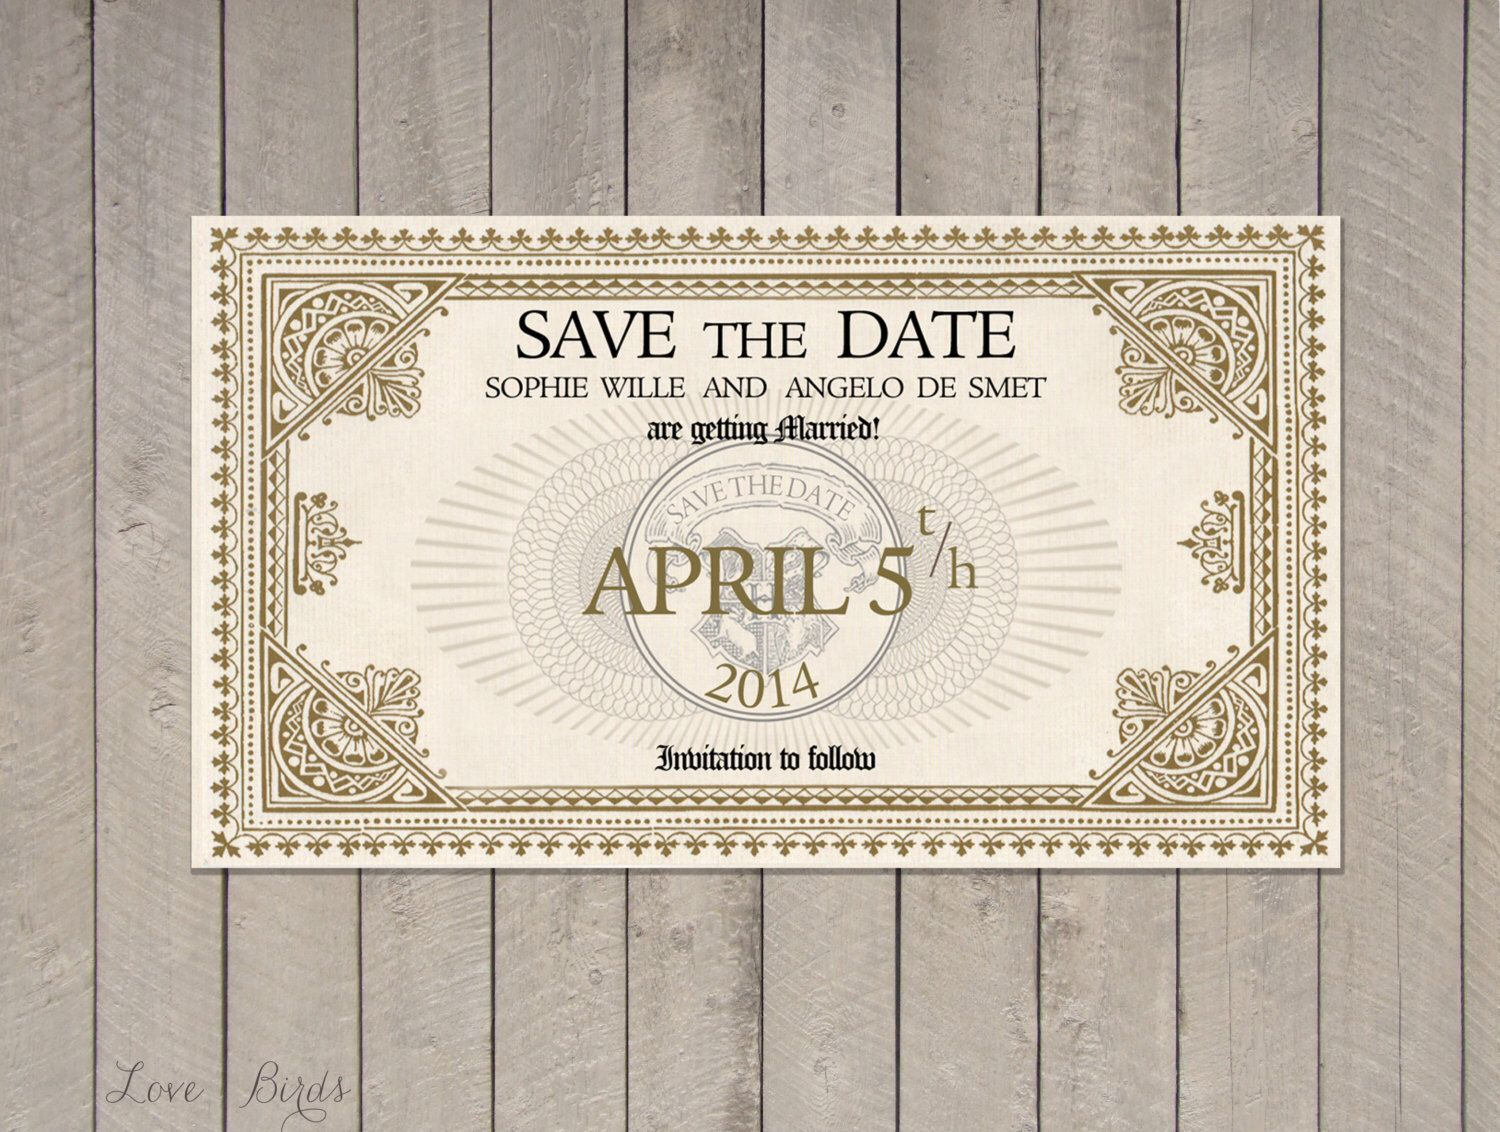 Wedding invitation Harry Potter - Save the Date Train Ticket ...